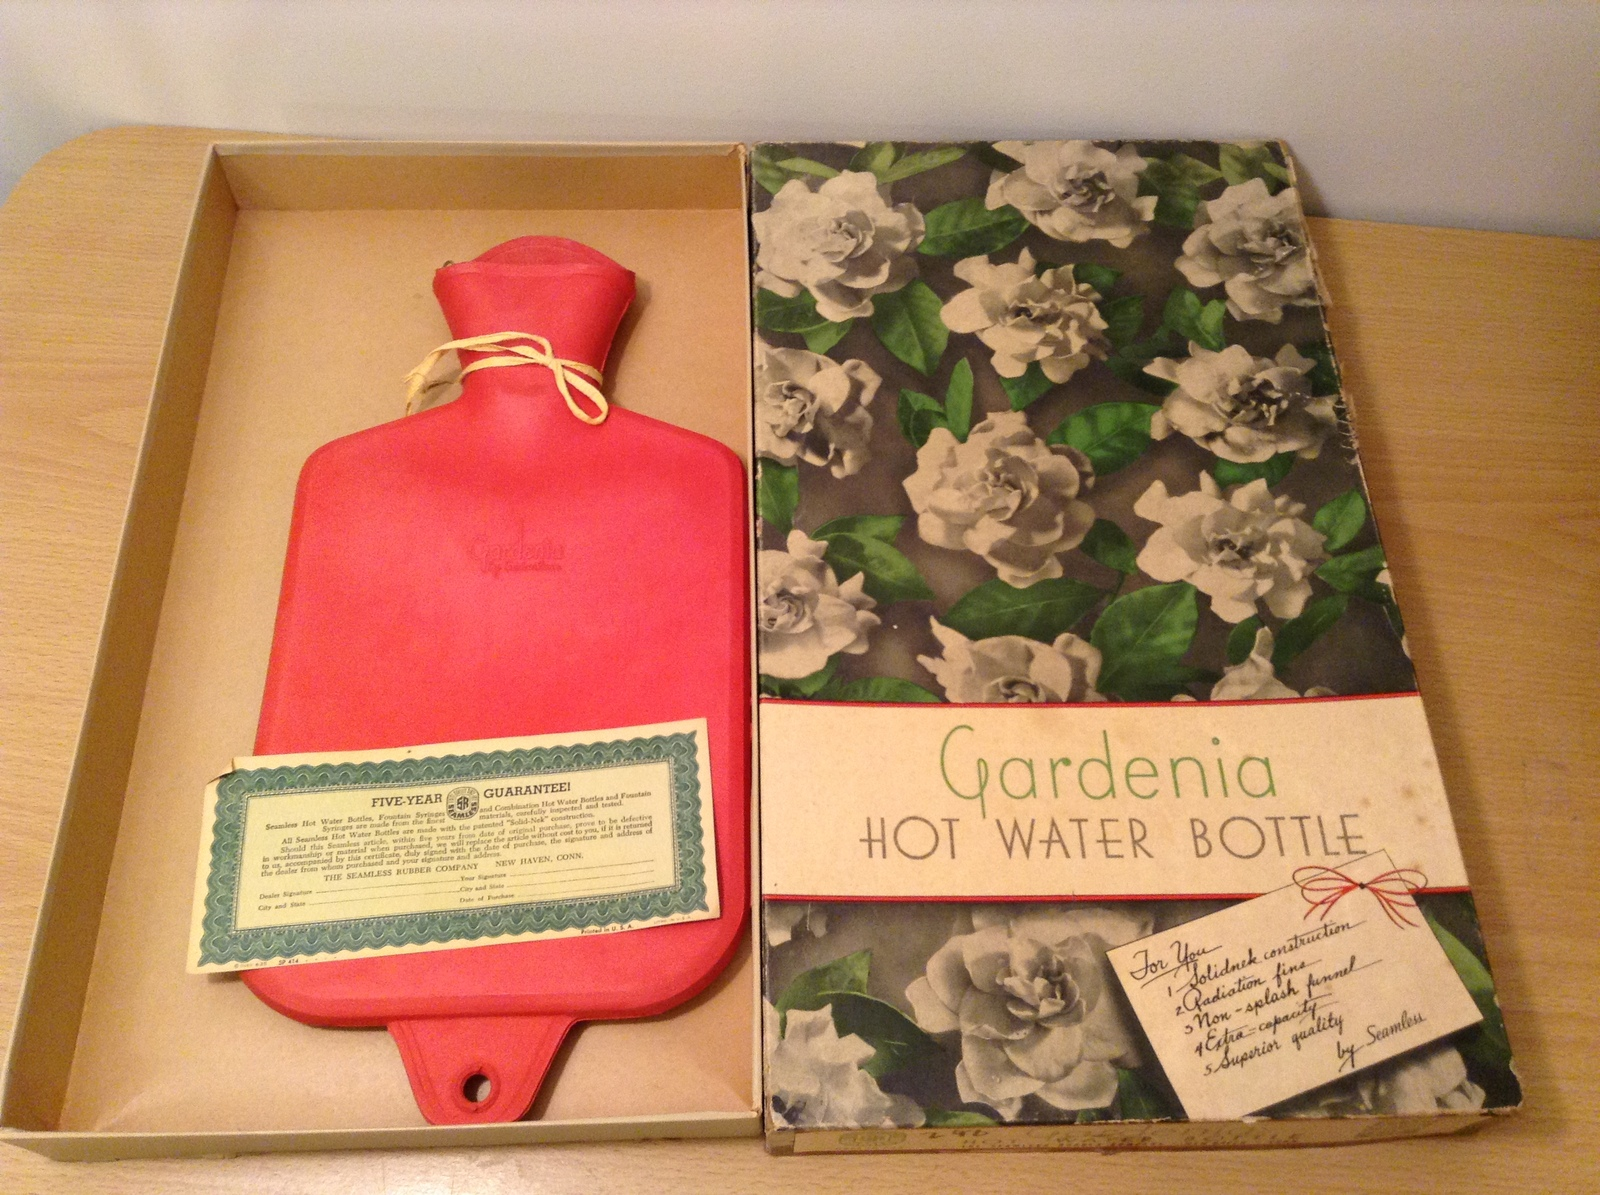 Vintage Gardenia Red Hot Water Bottle by Seamless Rubber Company Original Box